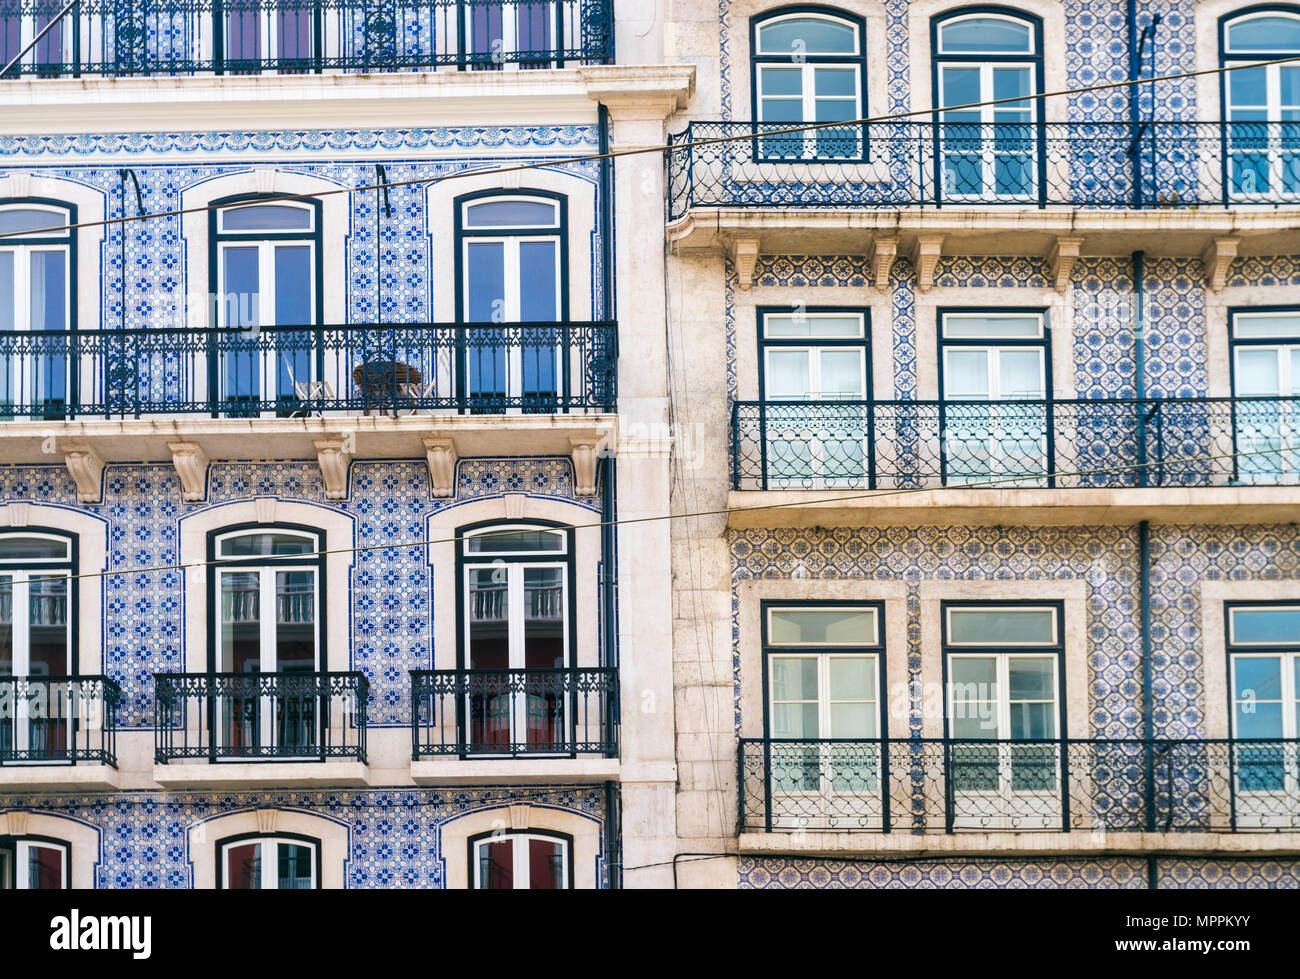 Portugal, Lisbon, facades of two multi-family houses, partial view - Stock Image